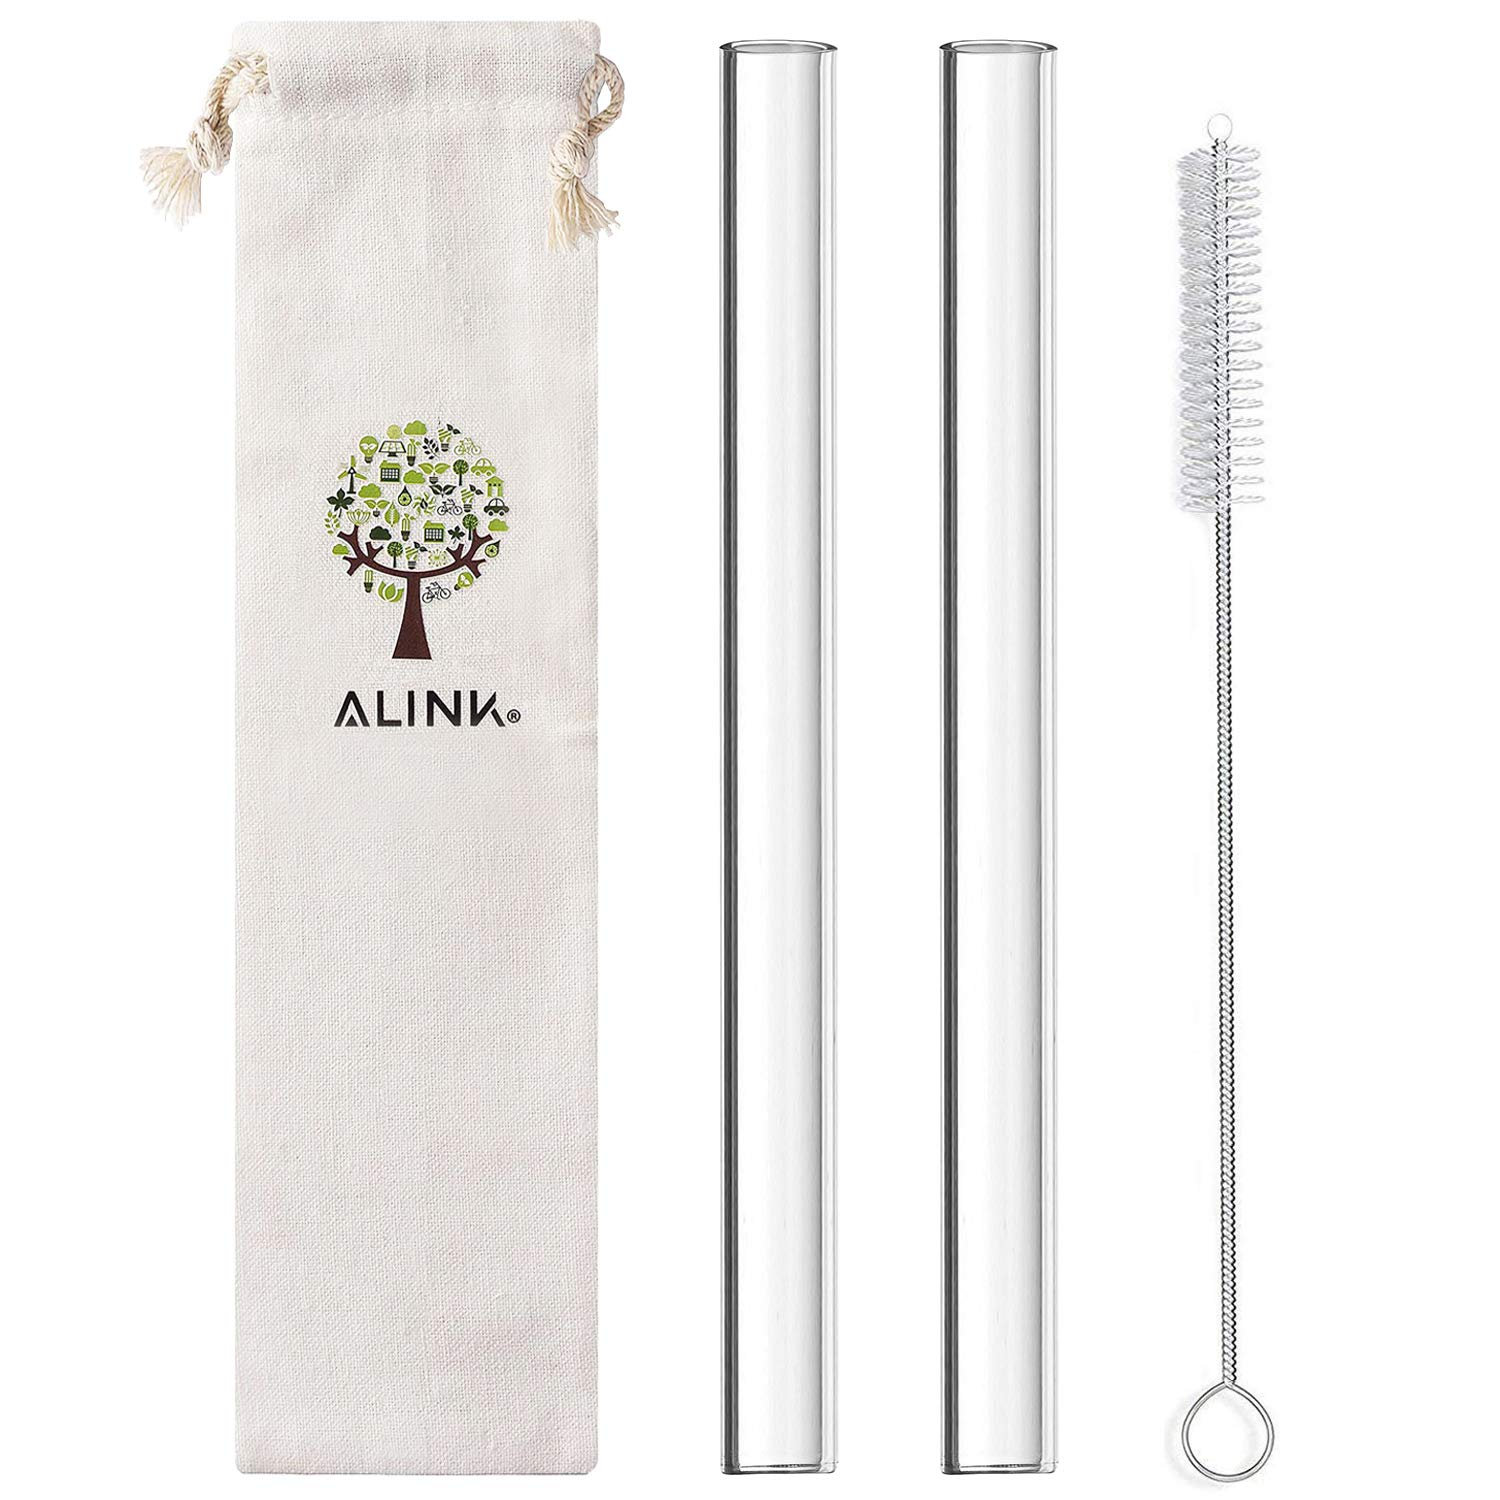 ALINK Glass Boba Straw, Reusable Wide Clear Smoothie Straws, 14mm X 9 in Set of 2 with Cleaning Brush